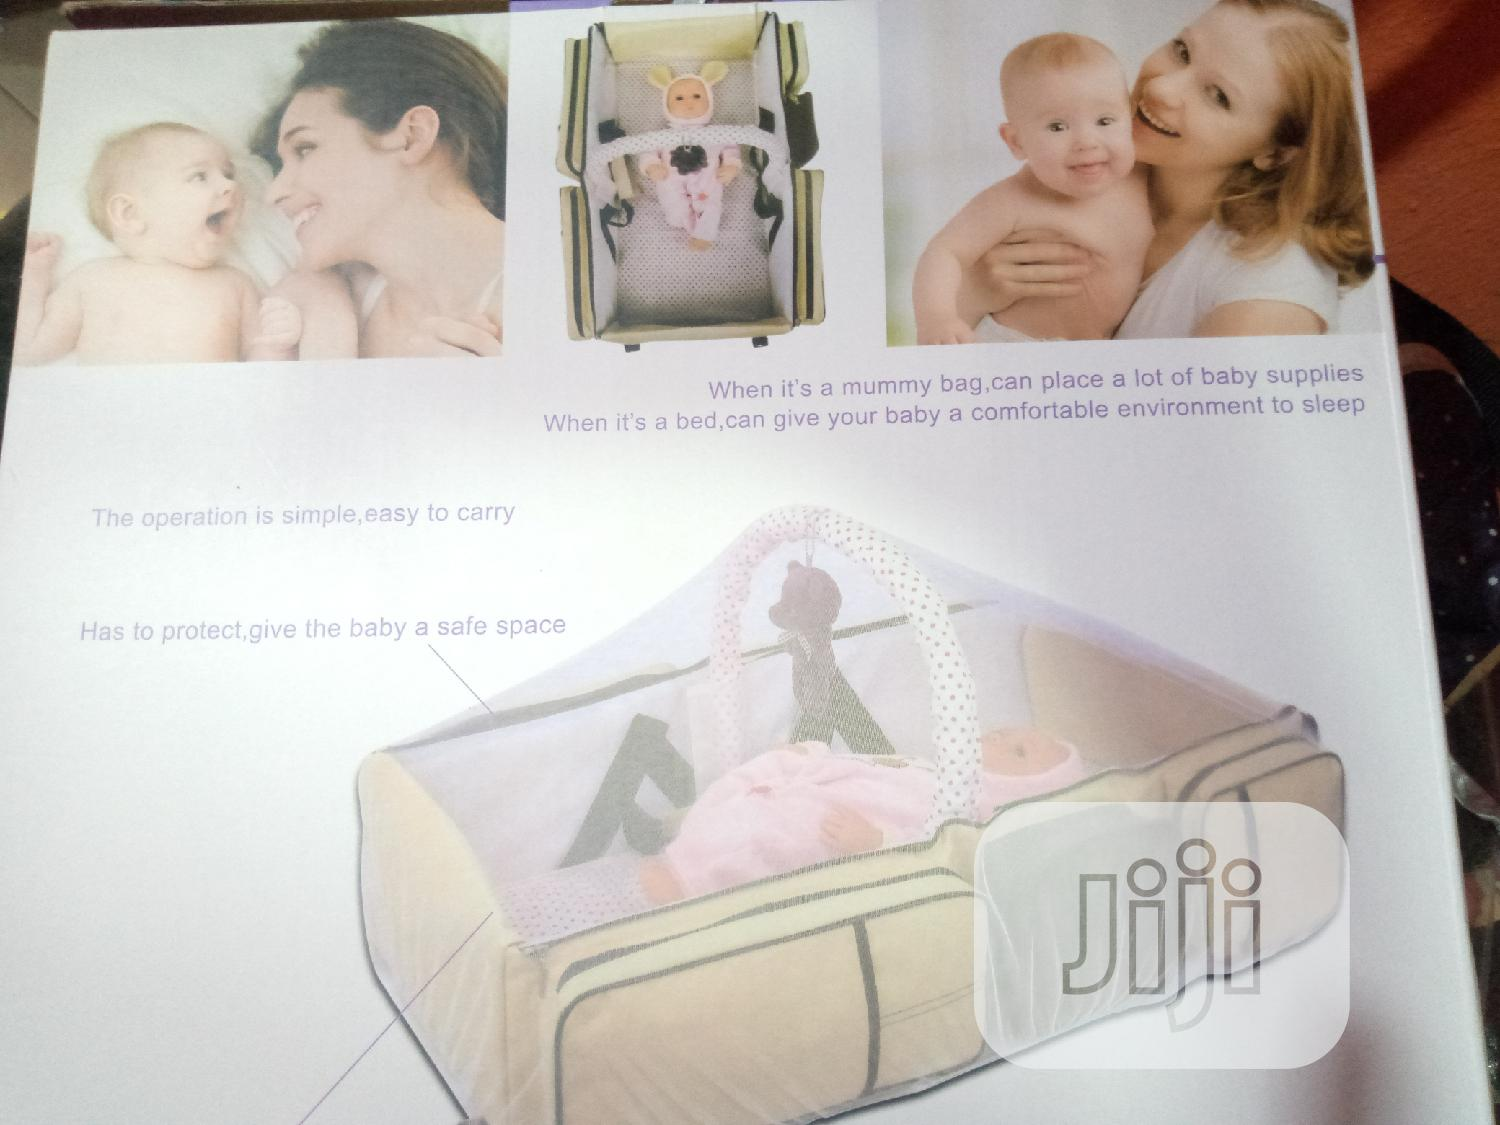 Archive: Baby Bed and Bag.